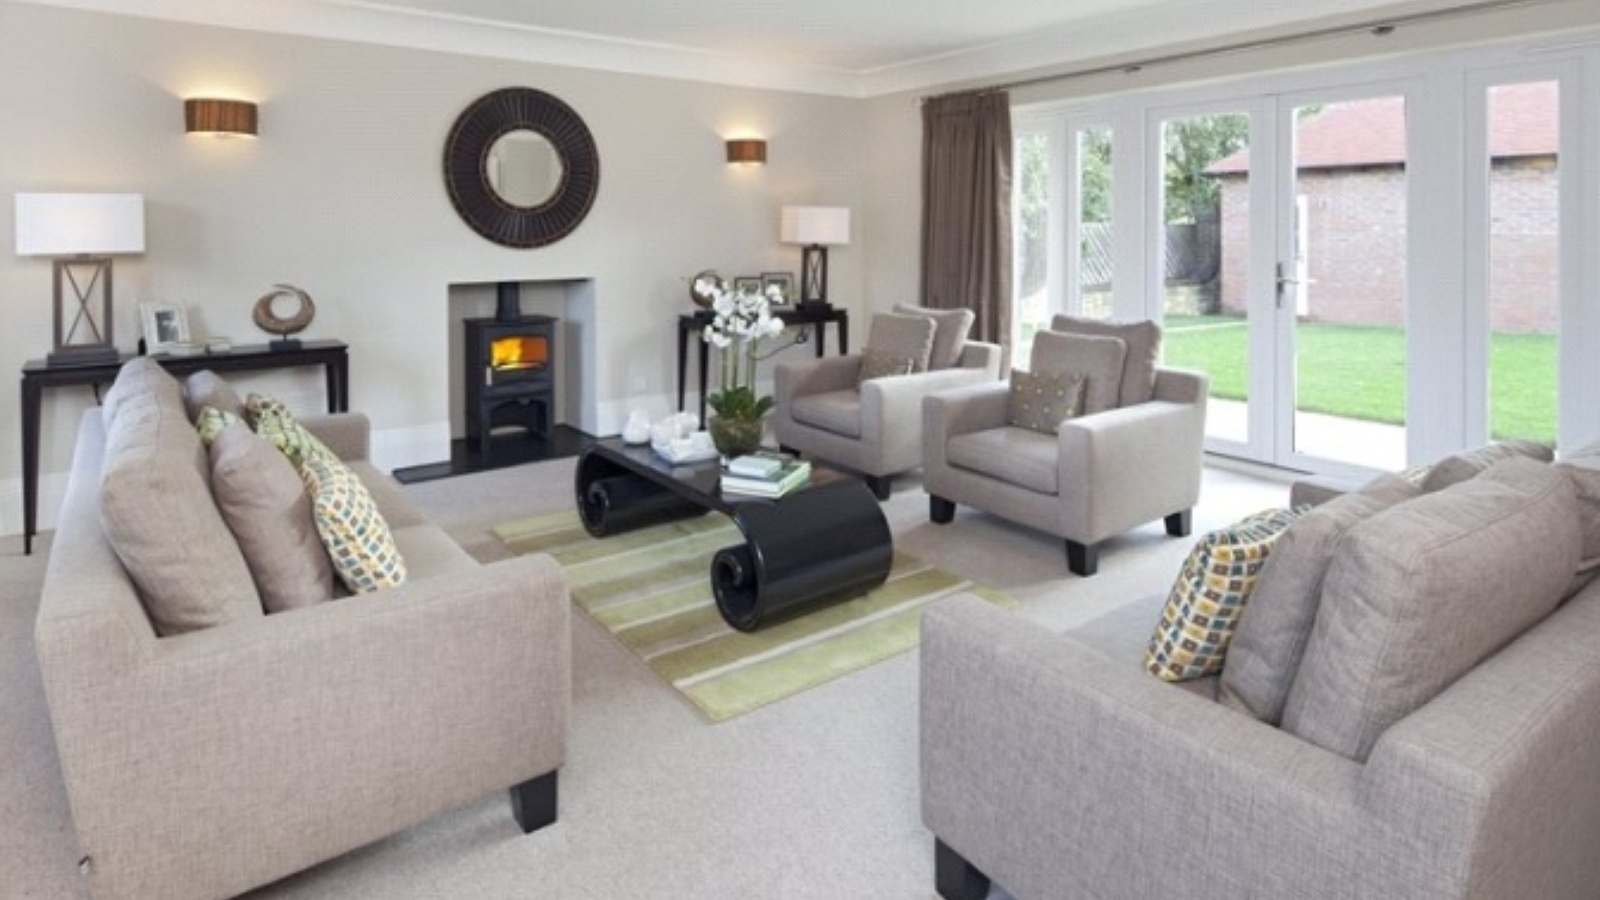 Rectory Homes - New Build Homes